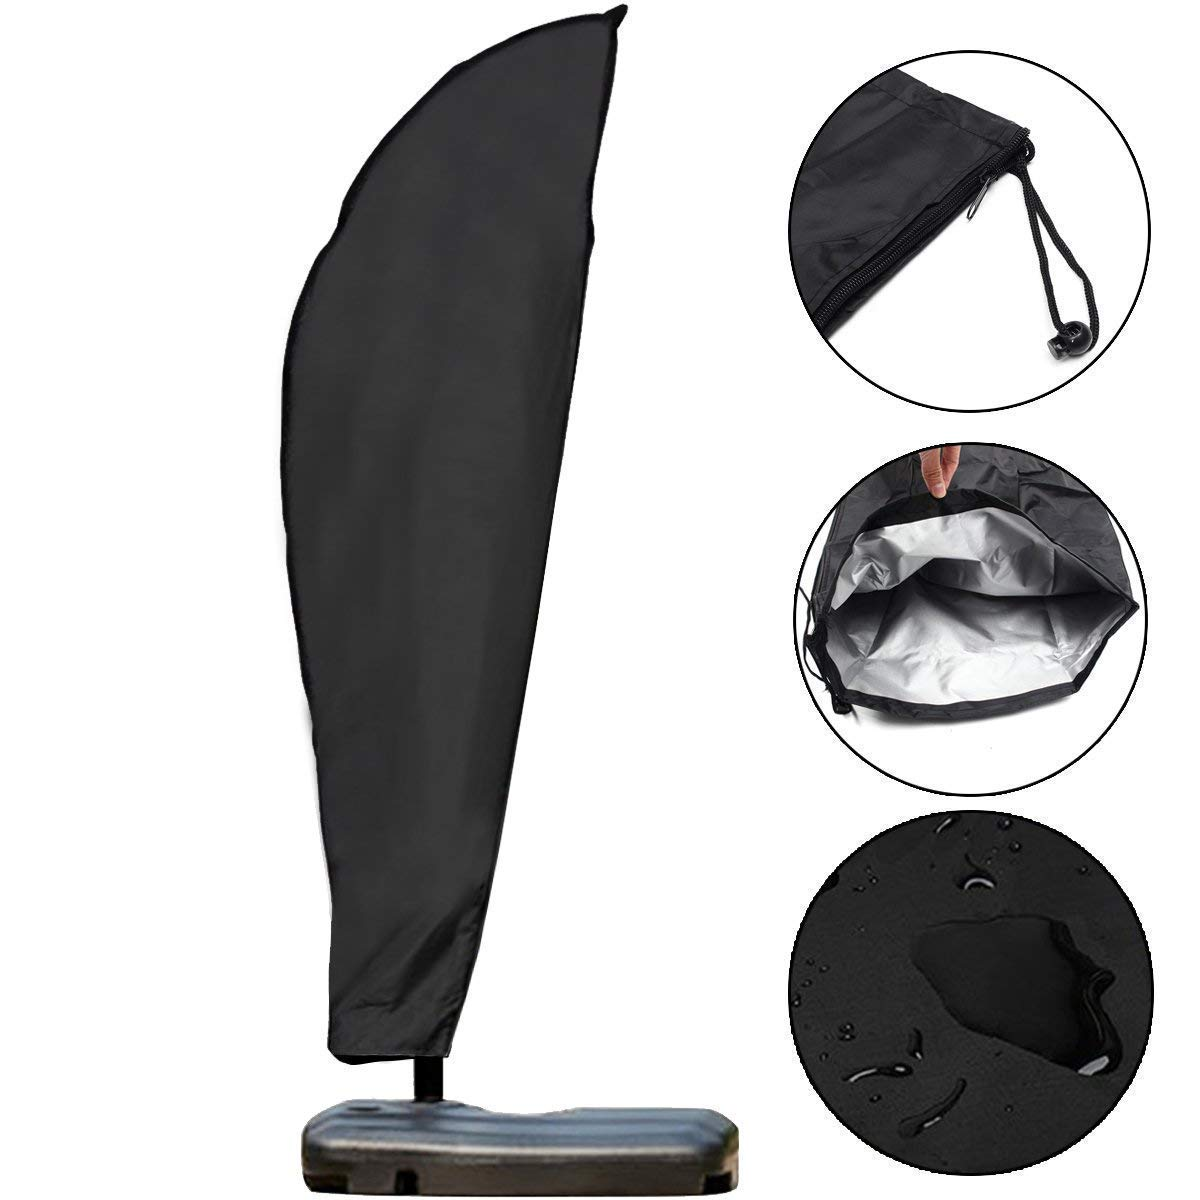 Artoper Umbrella Covers, Waterproof Patio Market Parasol Covers with Zipper for 9ft to 13ft Banana Cantilever Parasol Umbrellas Outdoor Umbrellas Black (280cm)